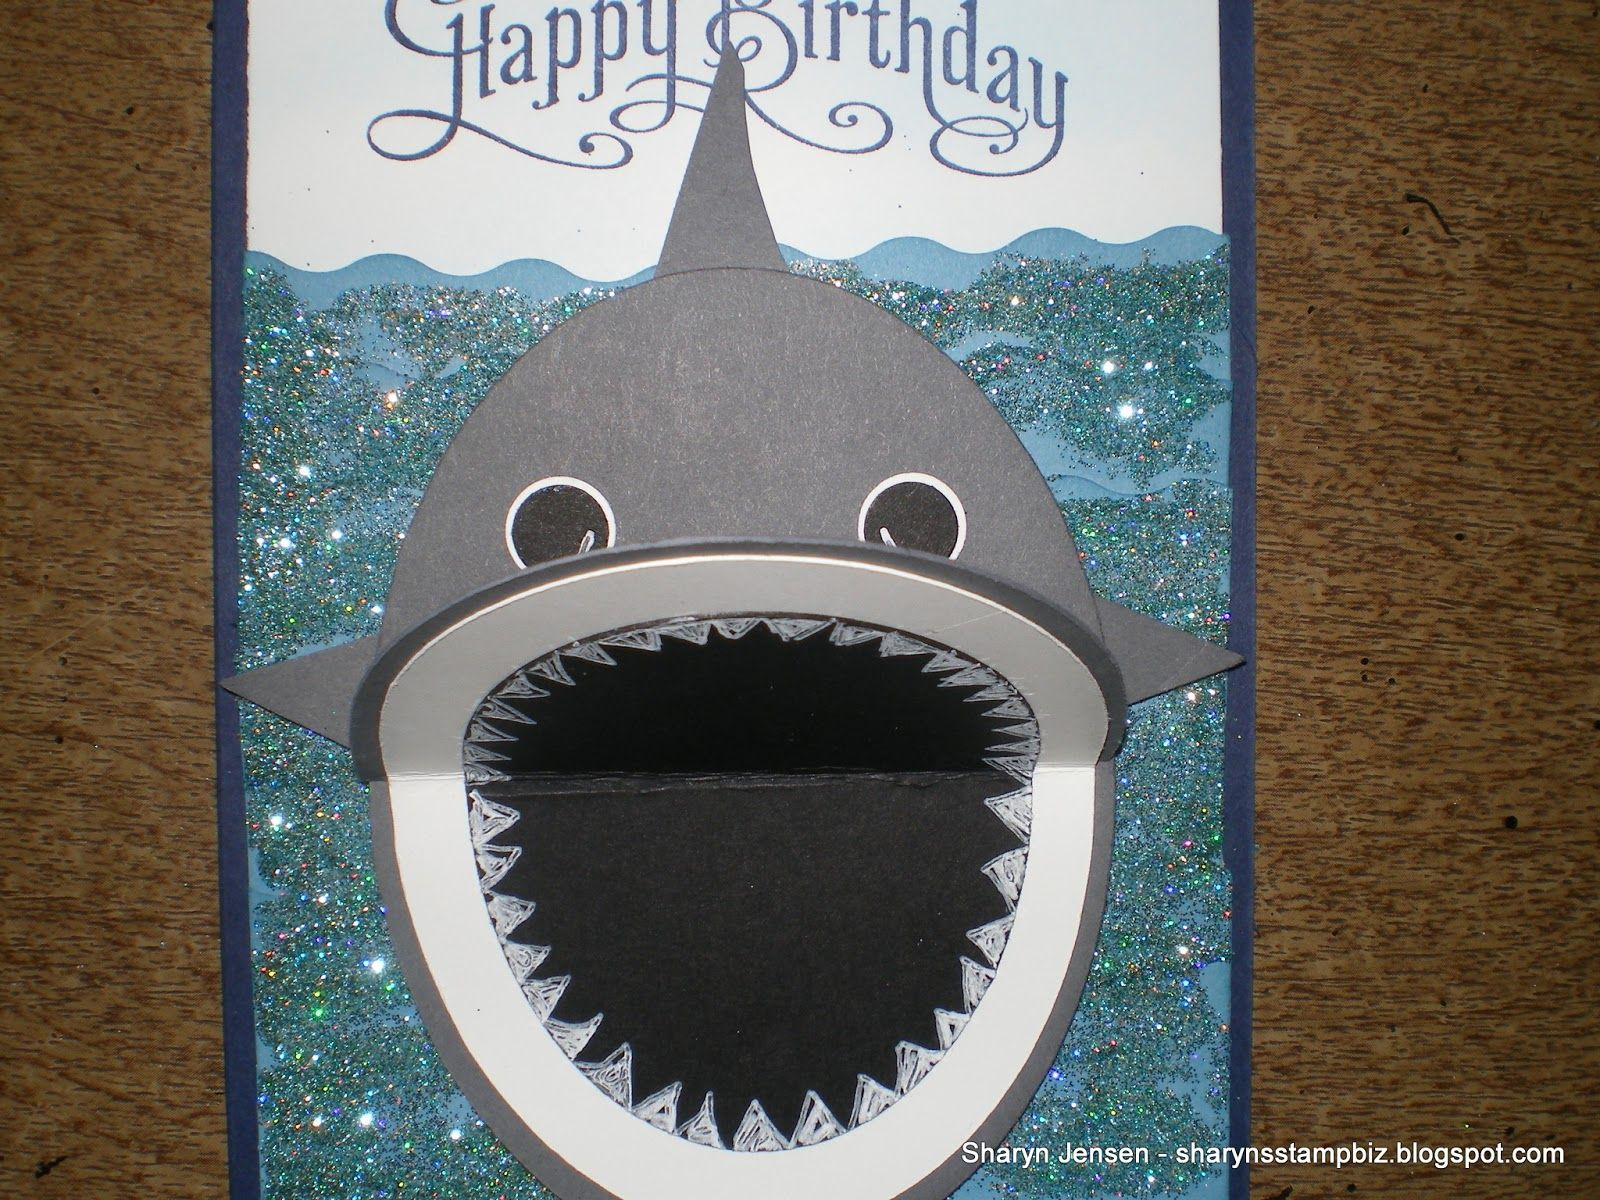 birthday boy card ideas ; 2408bb729a648d0cddd59b5f8bb9aa7f